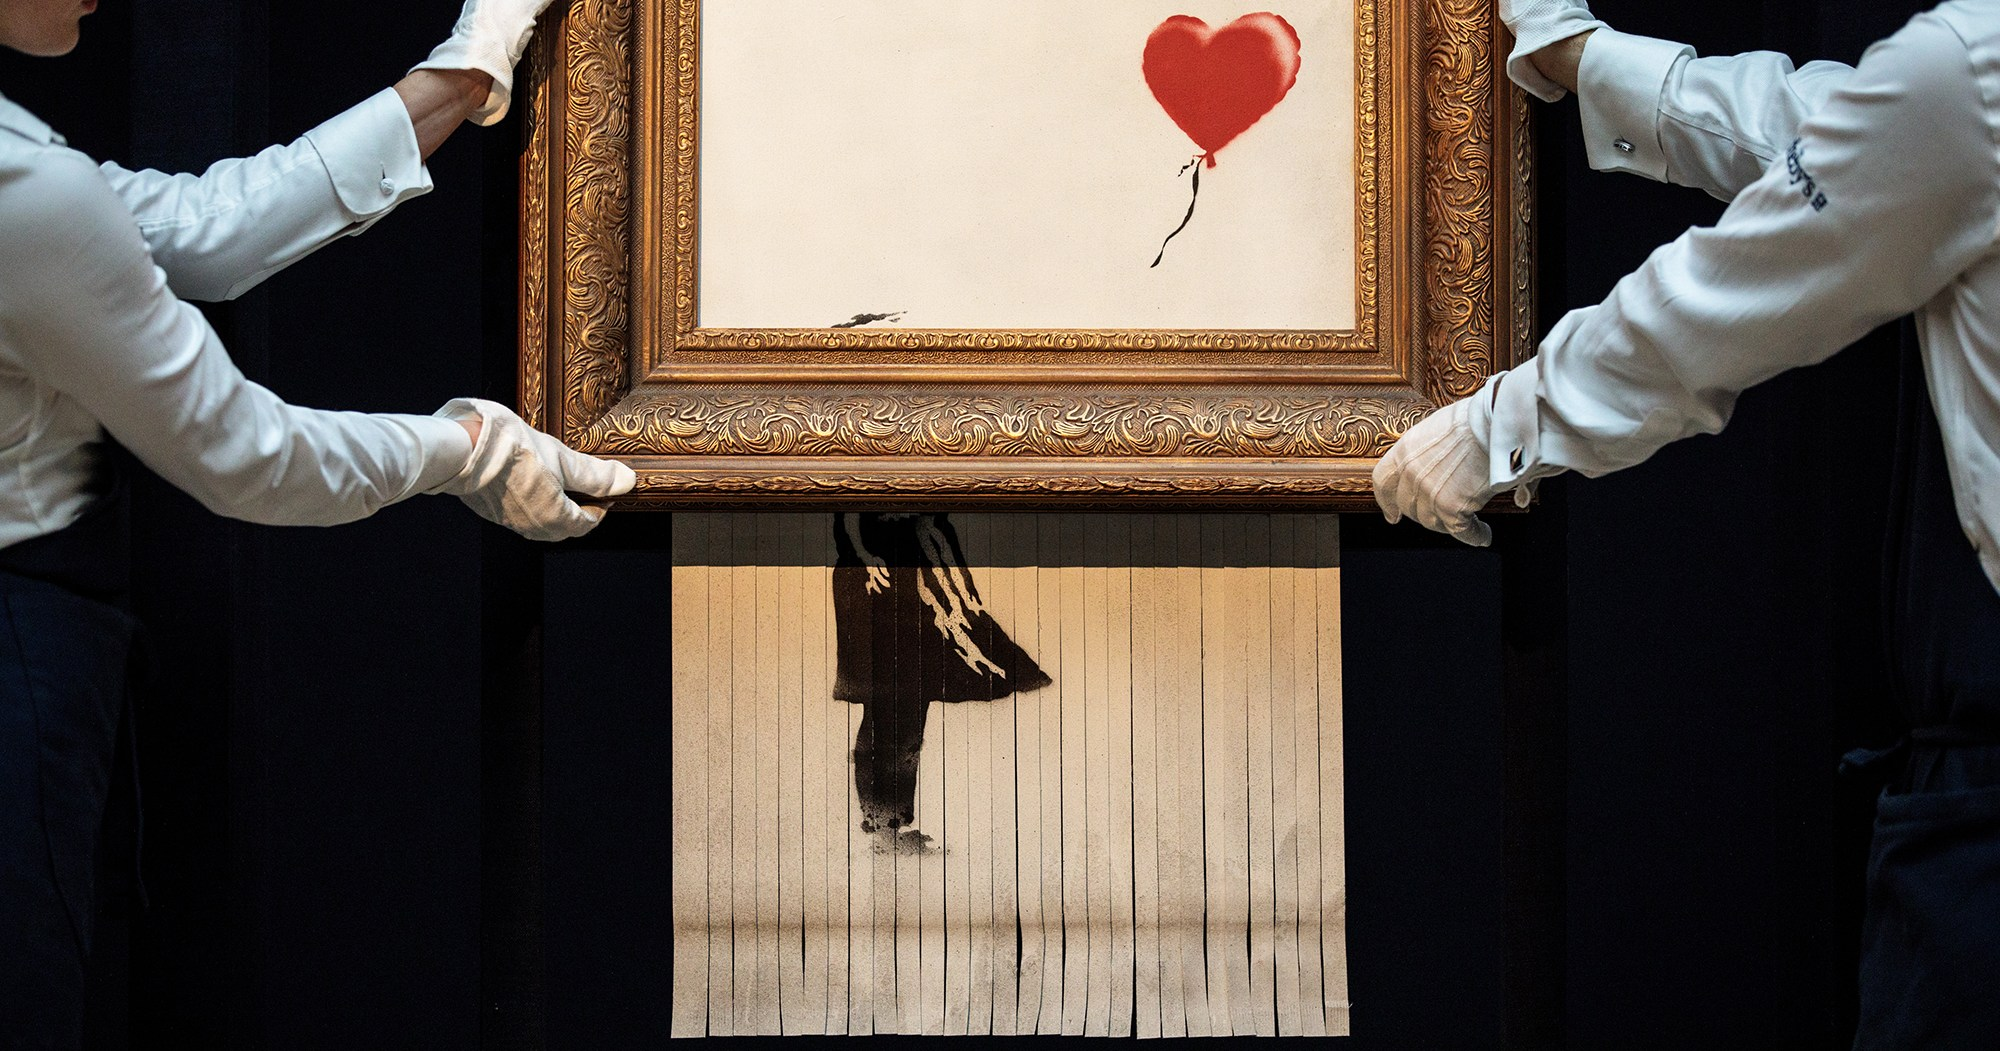 Buyer of Shredded $1.4 Million Banksy Painting Moves Forward With Purchase: 'My Own Piece of Art History'